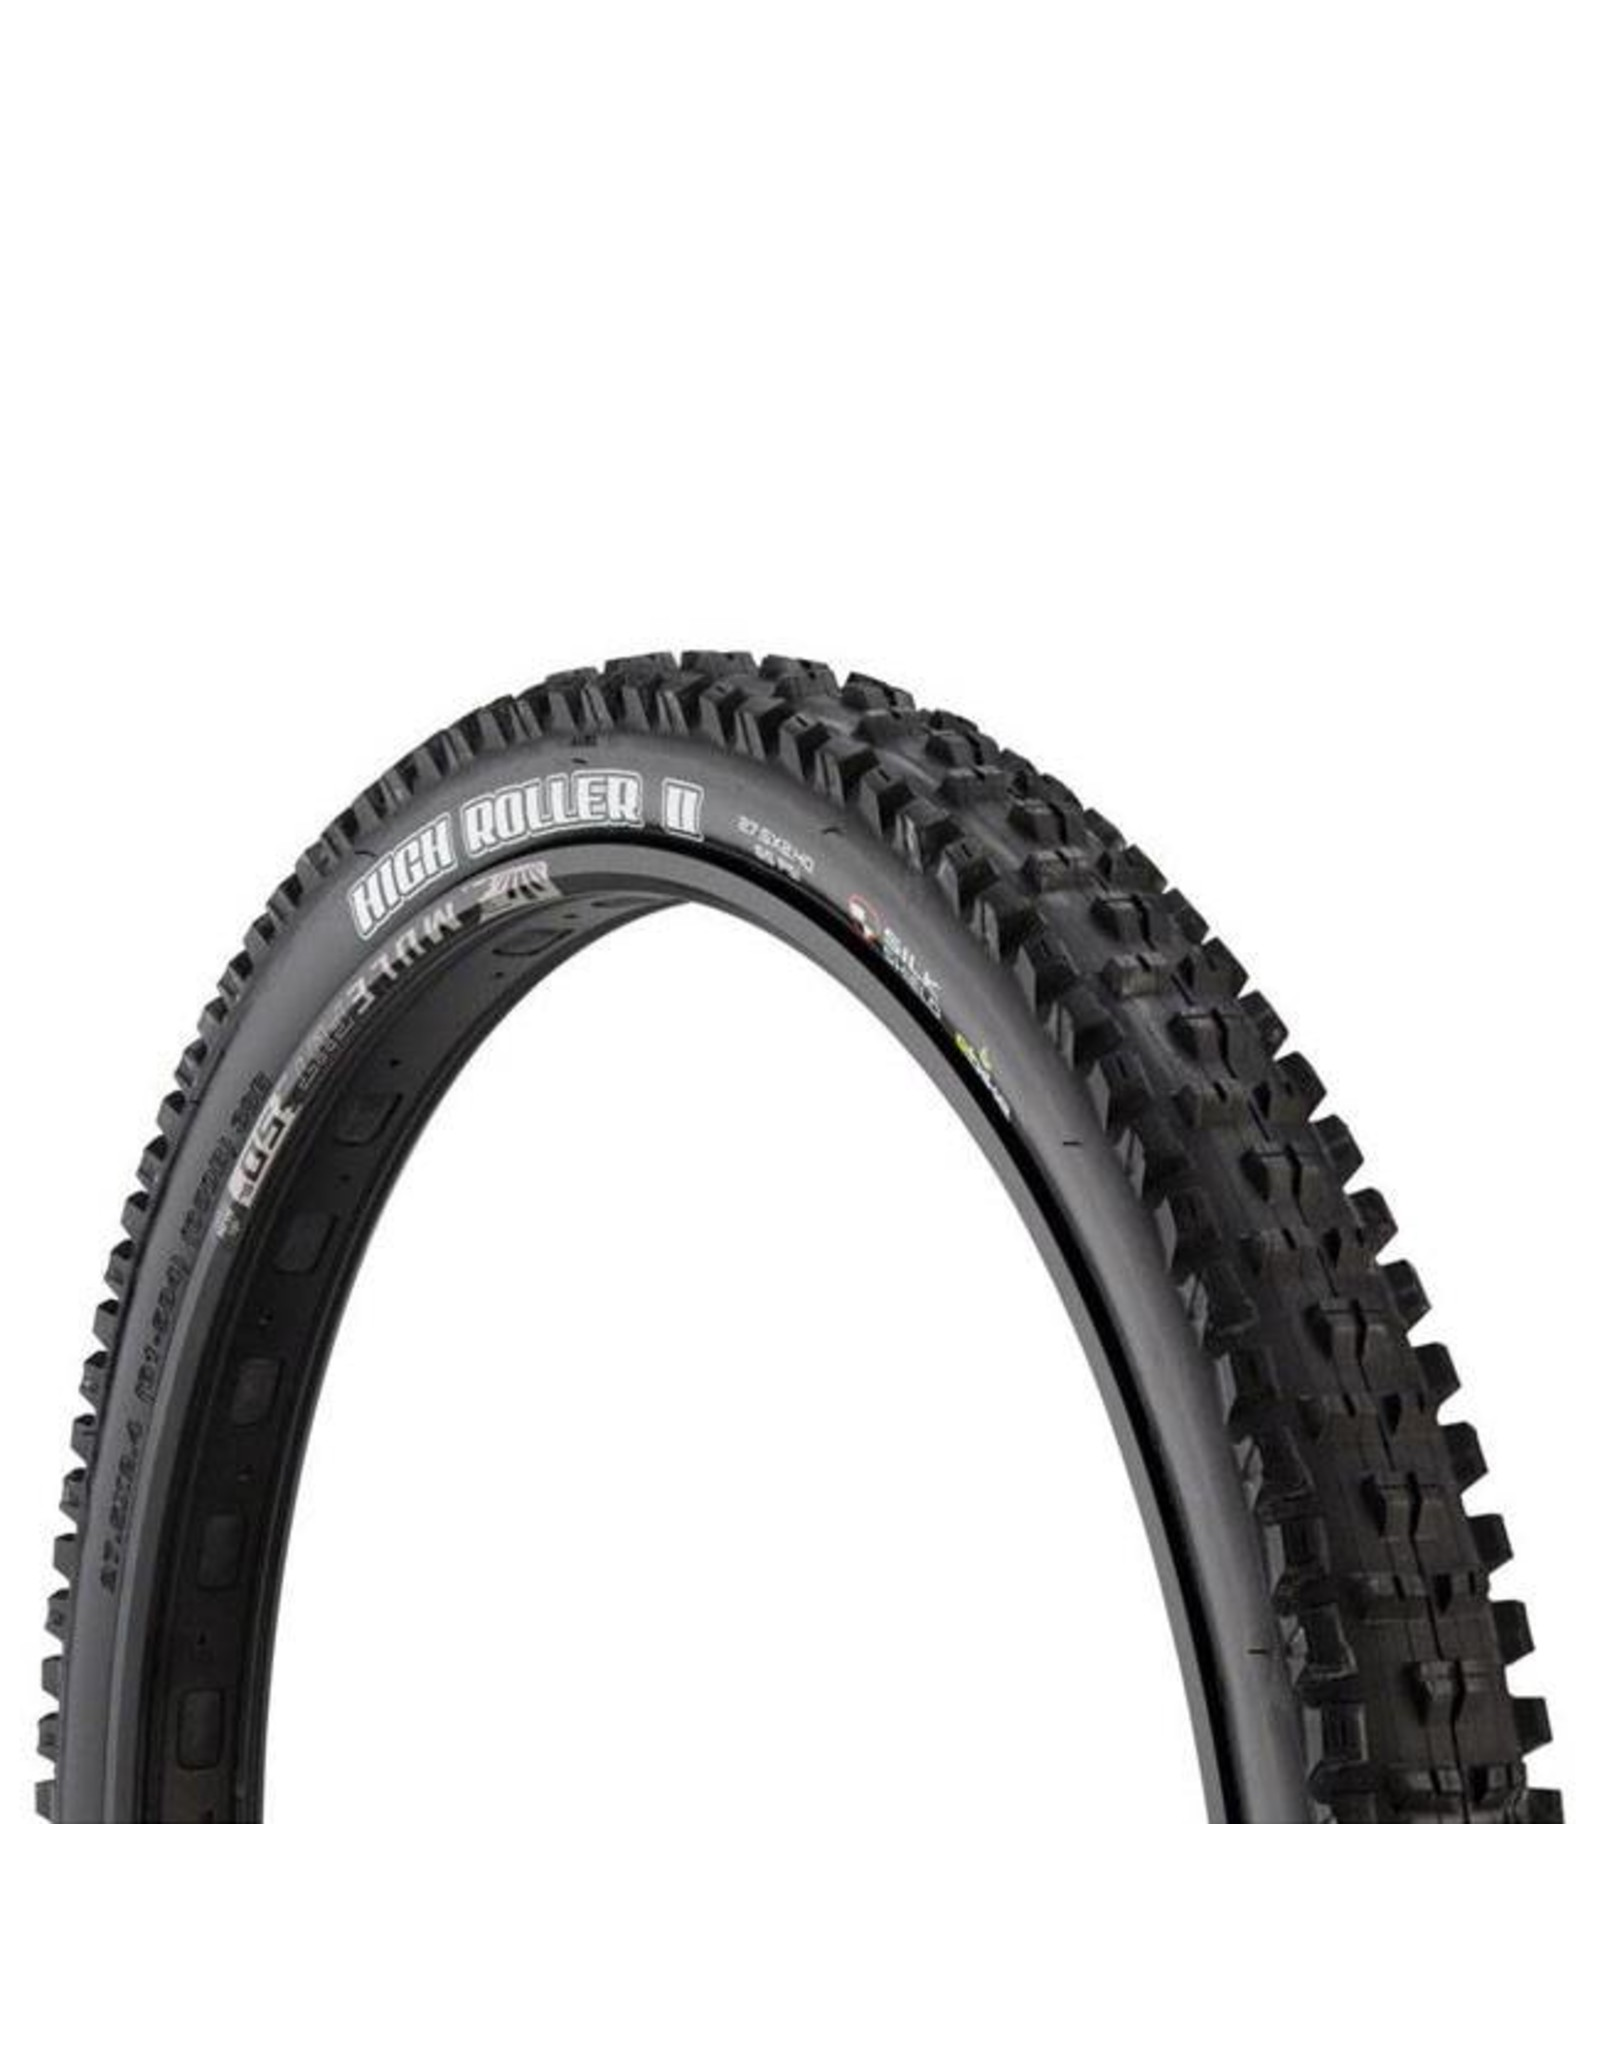 "Maxxis Maxxis High Roller II Tire: 27.5 x 2.40"", Folding, 60tpi, SilkShield, E- Bike Rated, Black"